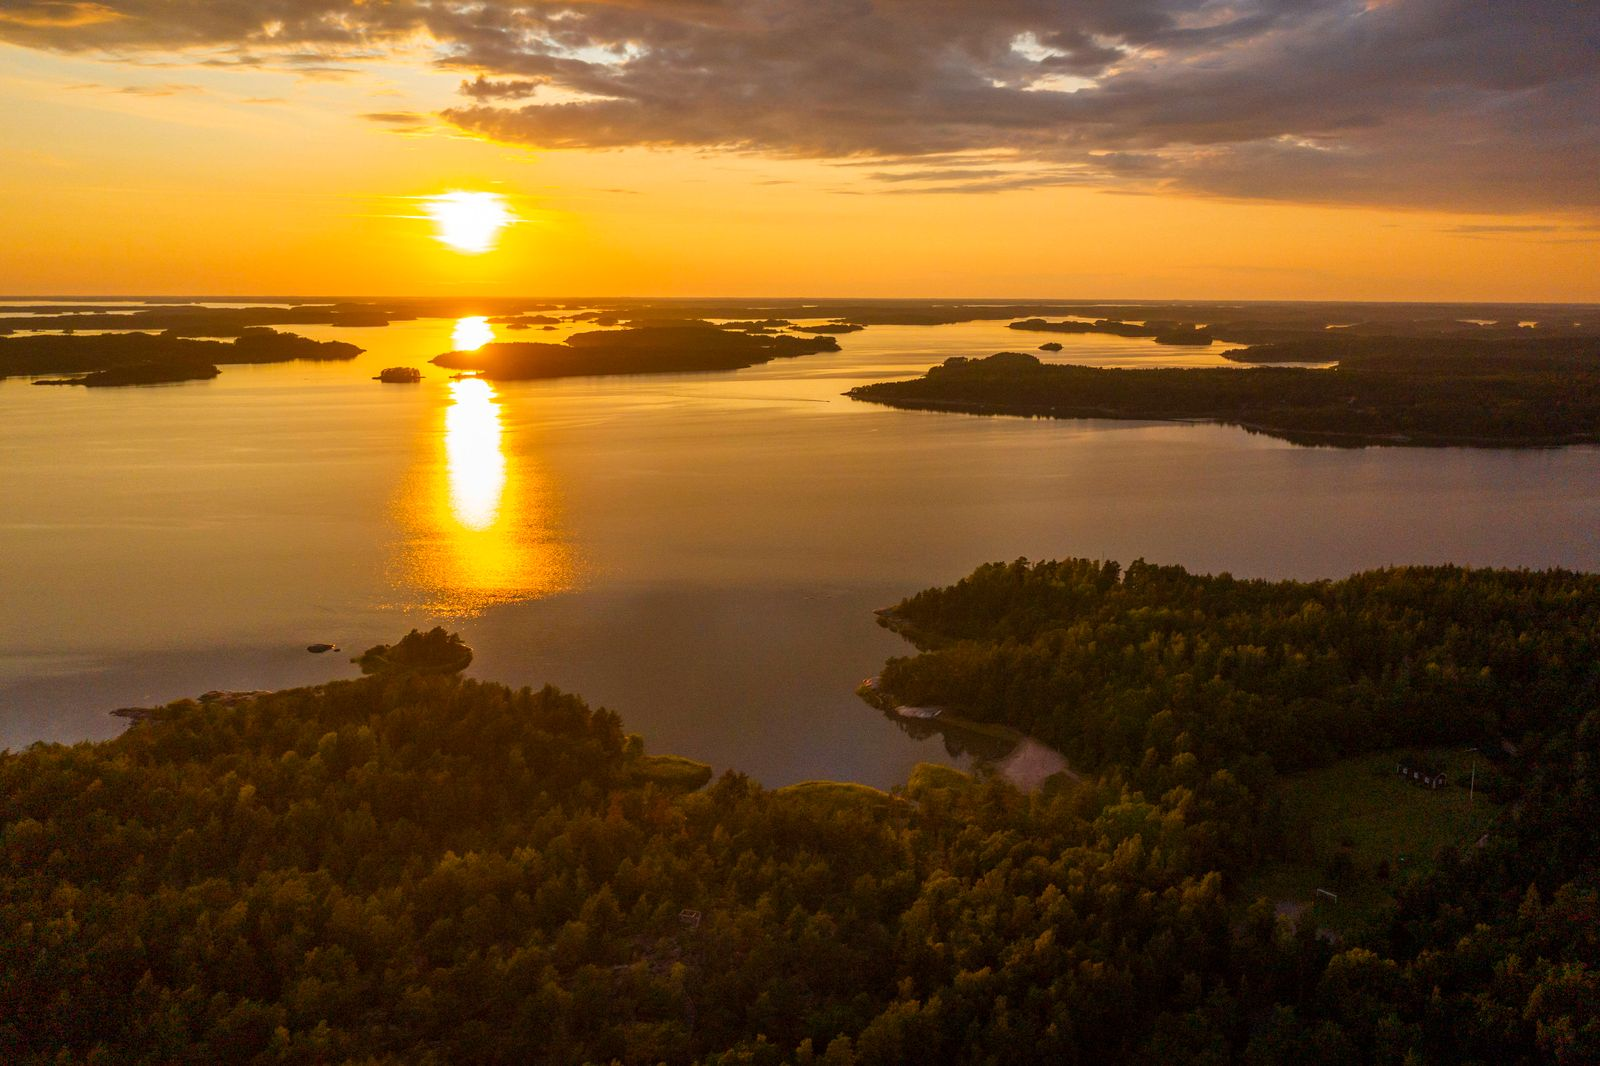 Landscape of the region of Southwest Finland, Finland Aerial view of the region of Southwest Finland where there are tho